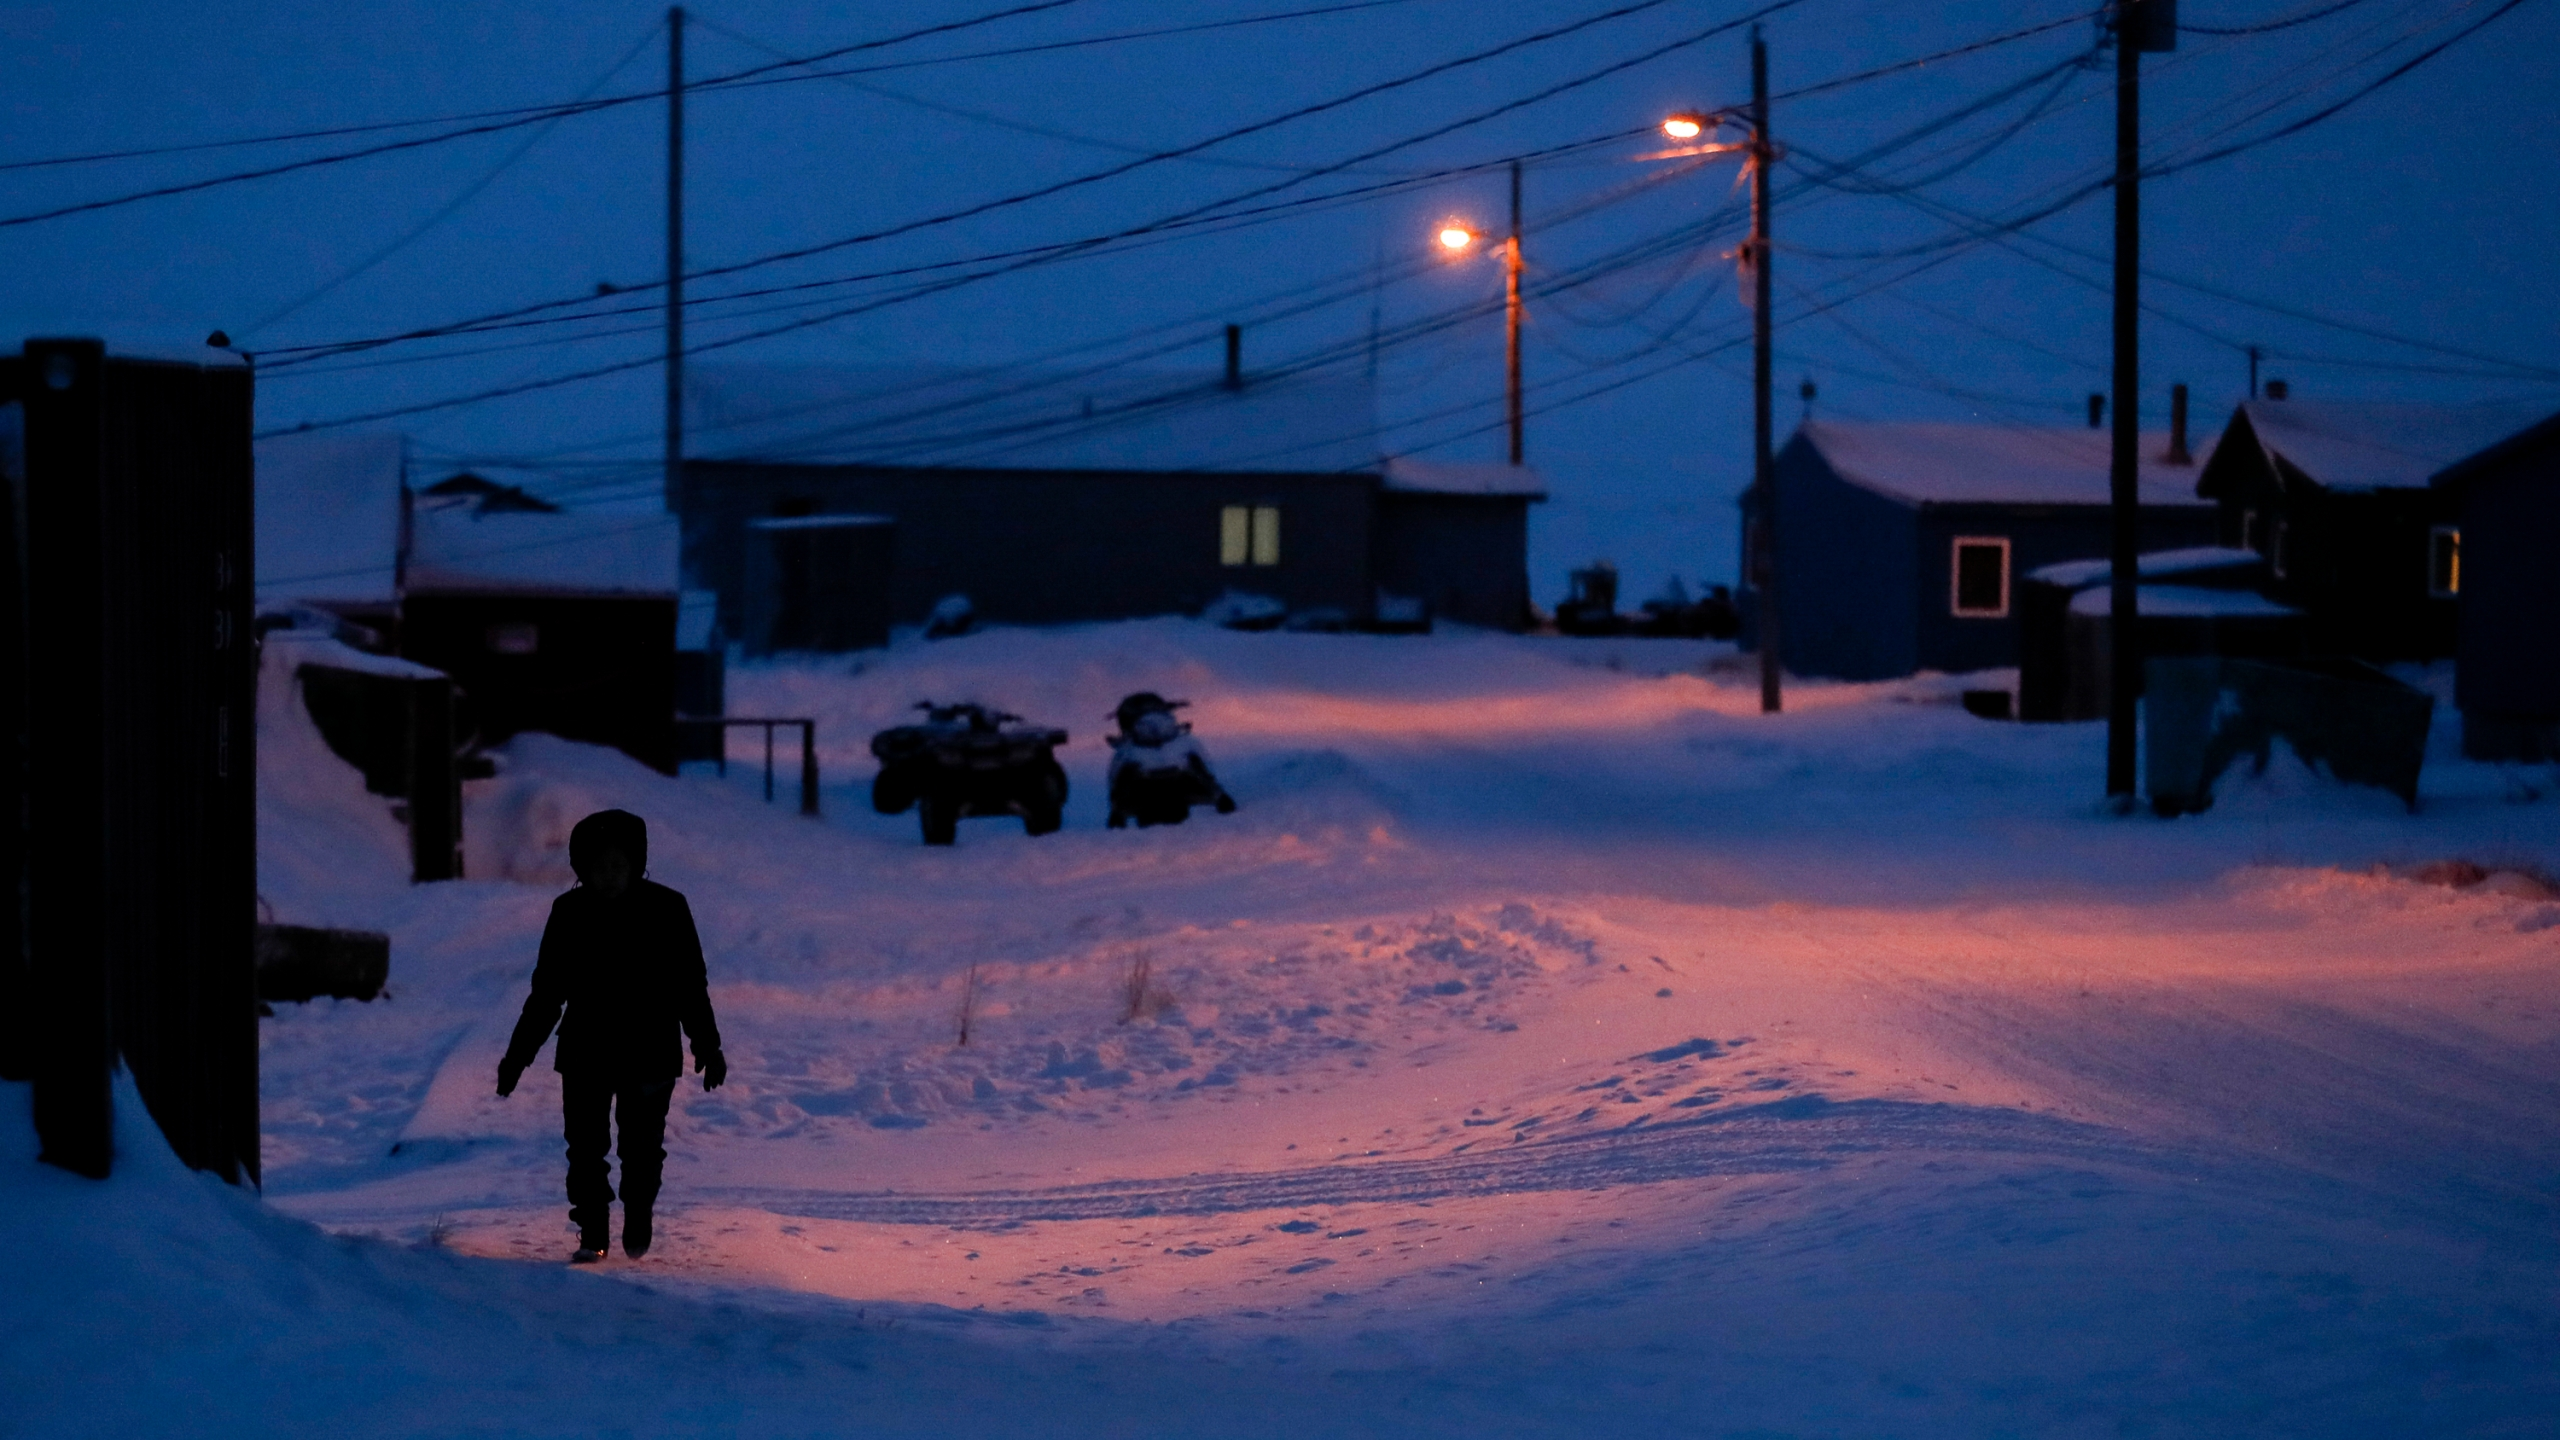 FILE - In this Jan. 20, 2020, file photo, a woman walks before dawn in Toksook Bay, Alaska, a mostly Yuip'ik village on the edge of the Bering Sea. The U.S. Supreme Court will hear oral arguments Monday, April 19, 2021, in a case that will determine who is eligible to receive more than $530 million in federal virus relief funding set aside for tribes more than a year ago. More than a dozen Native American tribes sued the U.S. Treasury Department to keep the money out of the hands of Alaska Native corporations, which provide services to Alaska Natives but do not have a government-to-government relationship with the United States. (AP Photo/Gregory Bull, File)